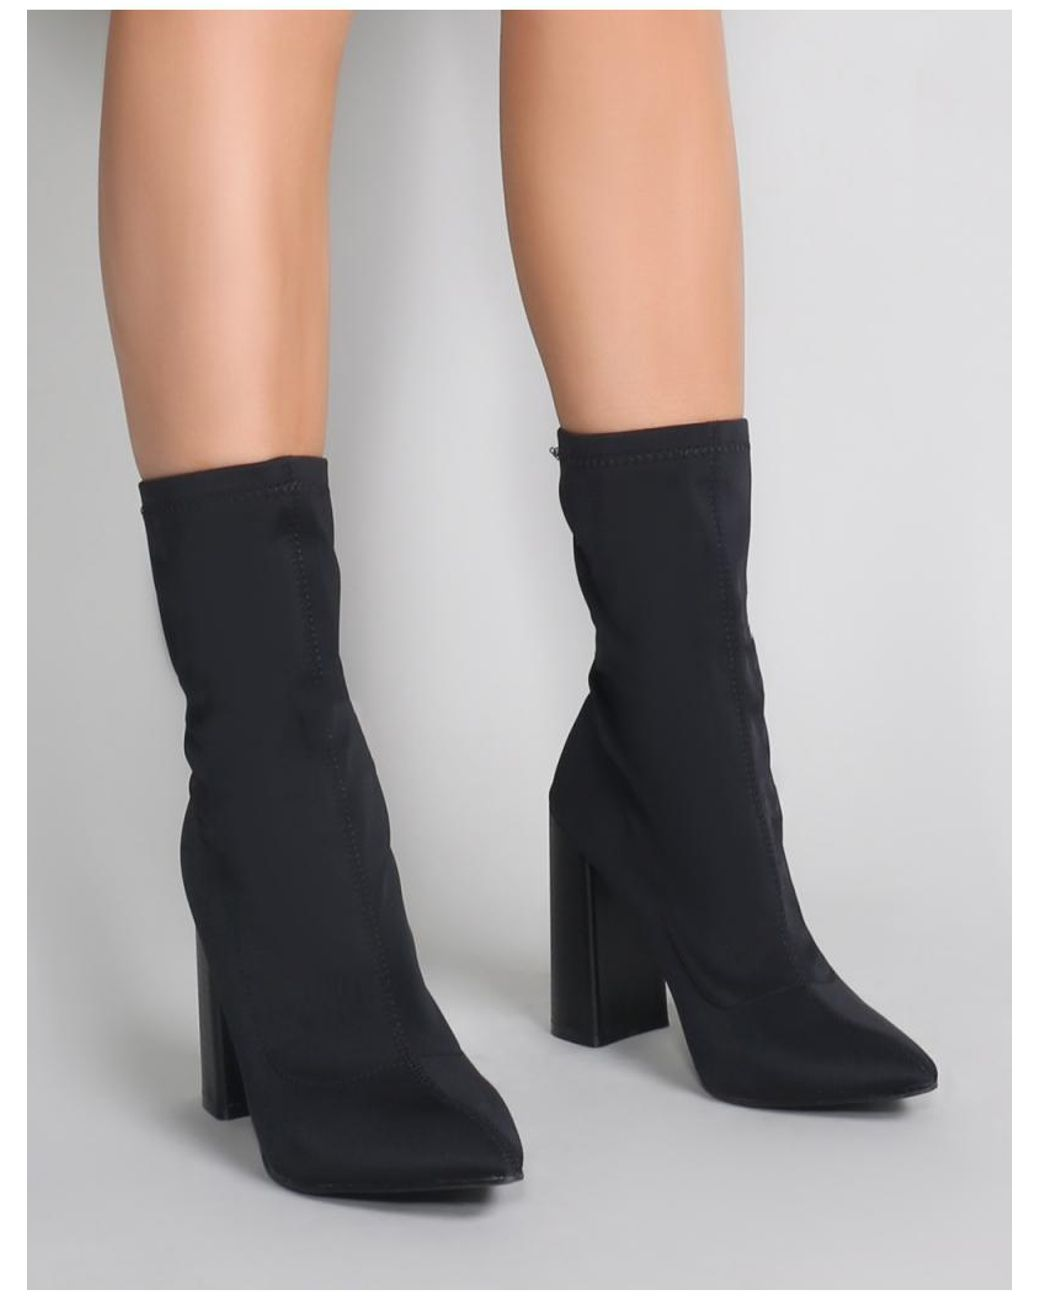 cbd32552795f Lyst - Public Desire Libby Flared Heel Sock Fit Ankle Boots In Black Stretch  in Black